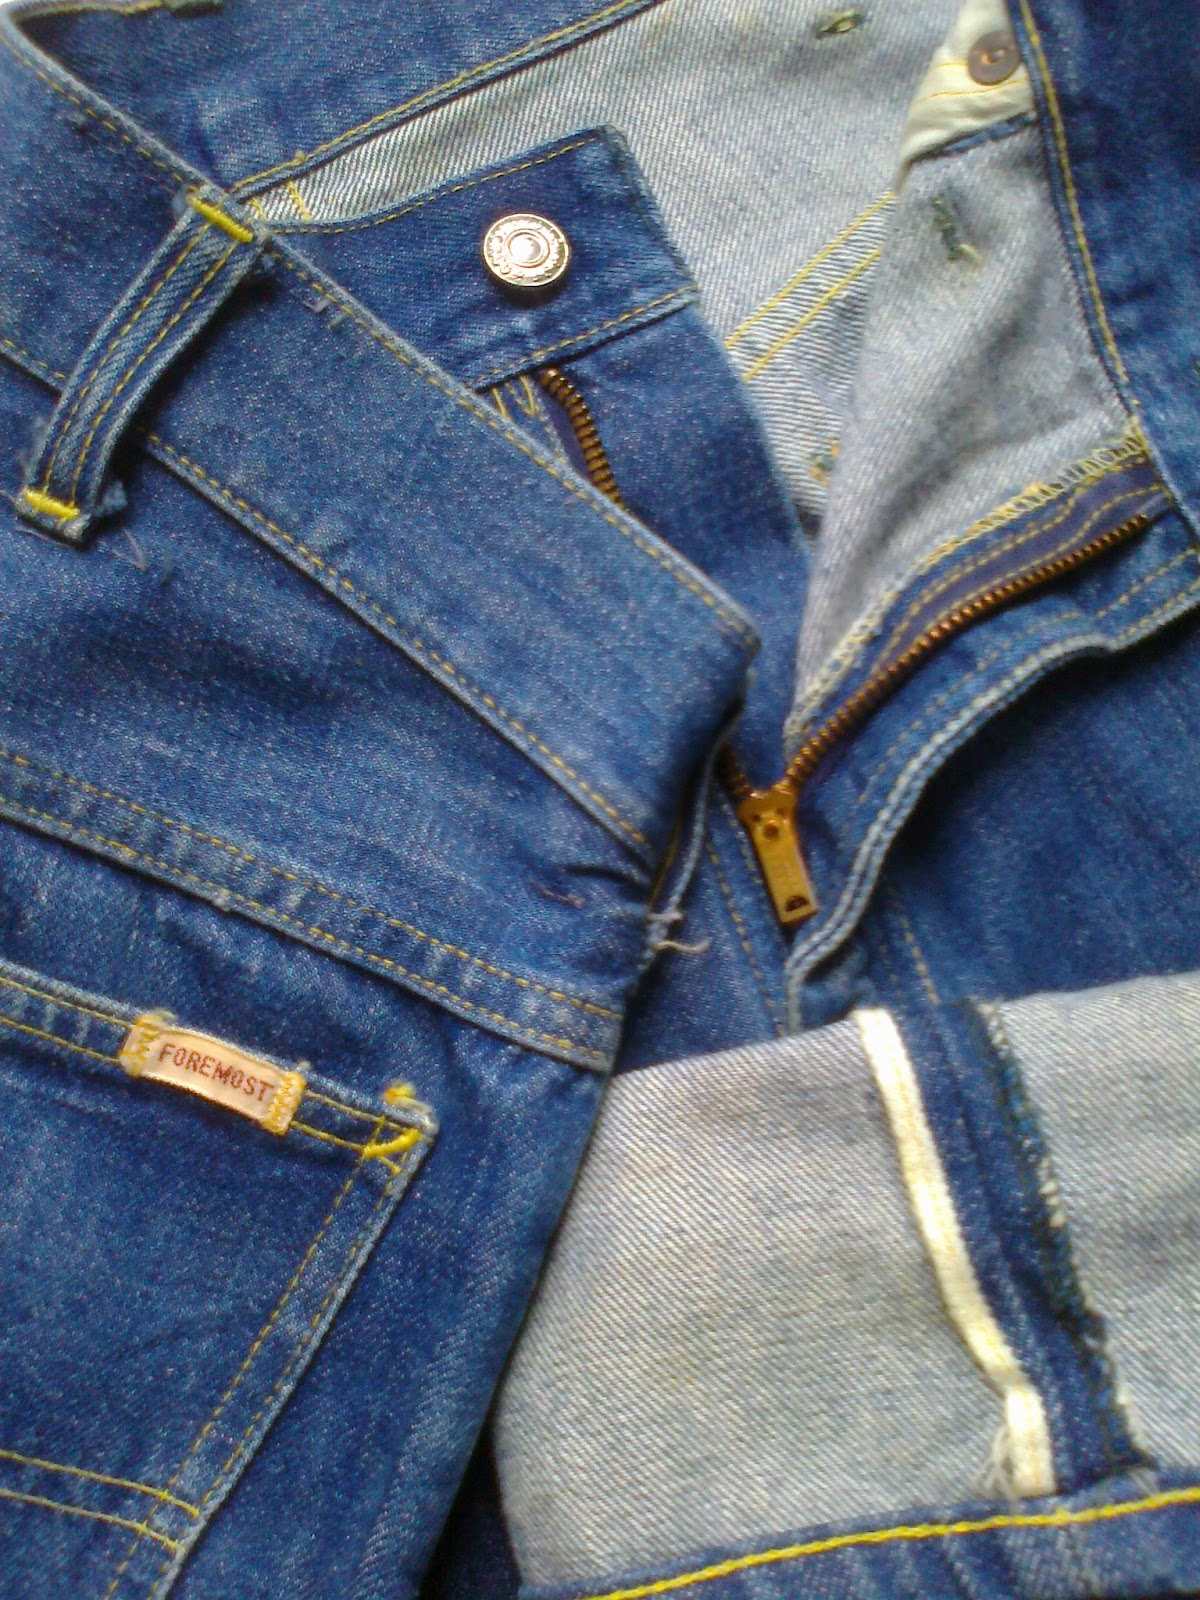 Wish You Were Here Vintage JC Penney Foremost Jeans